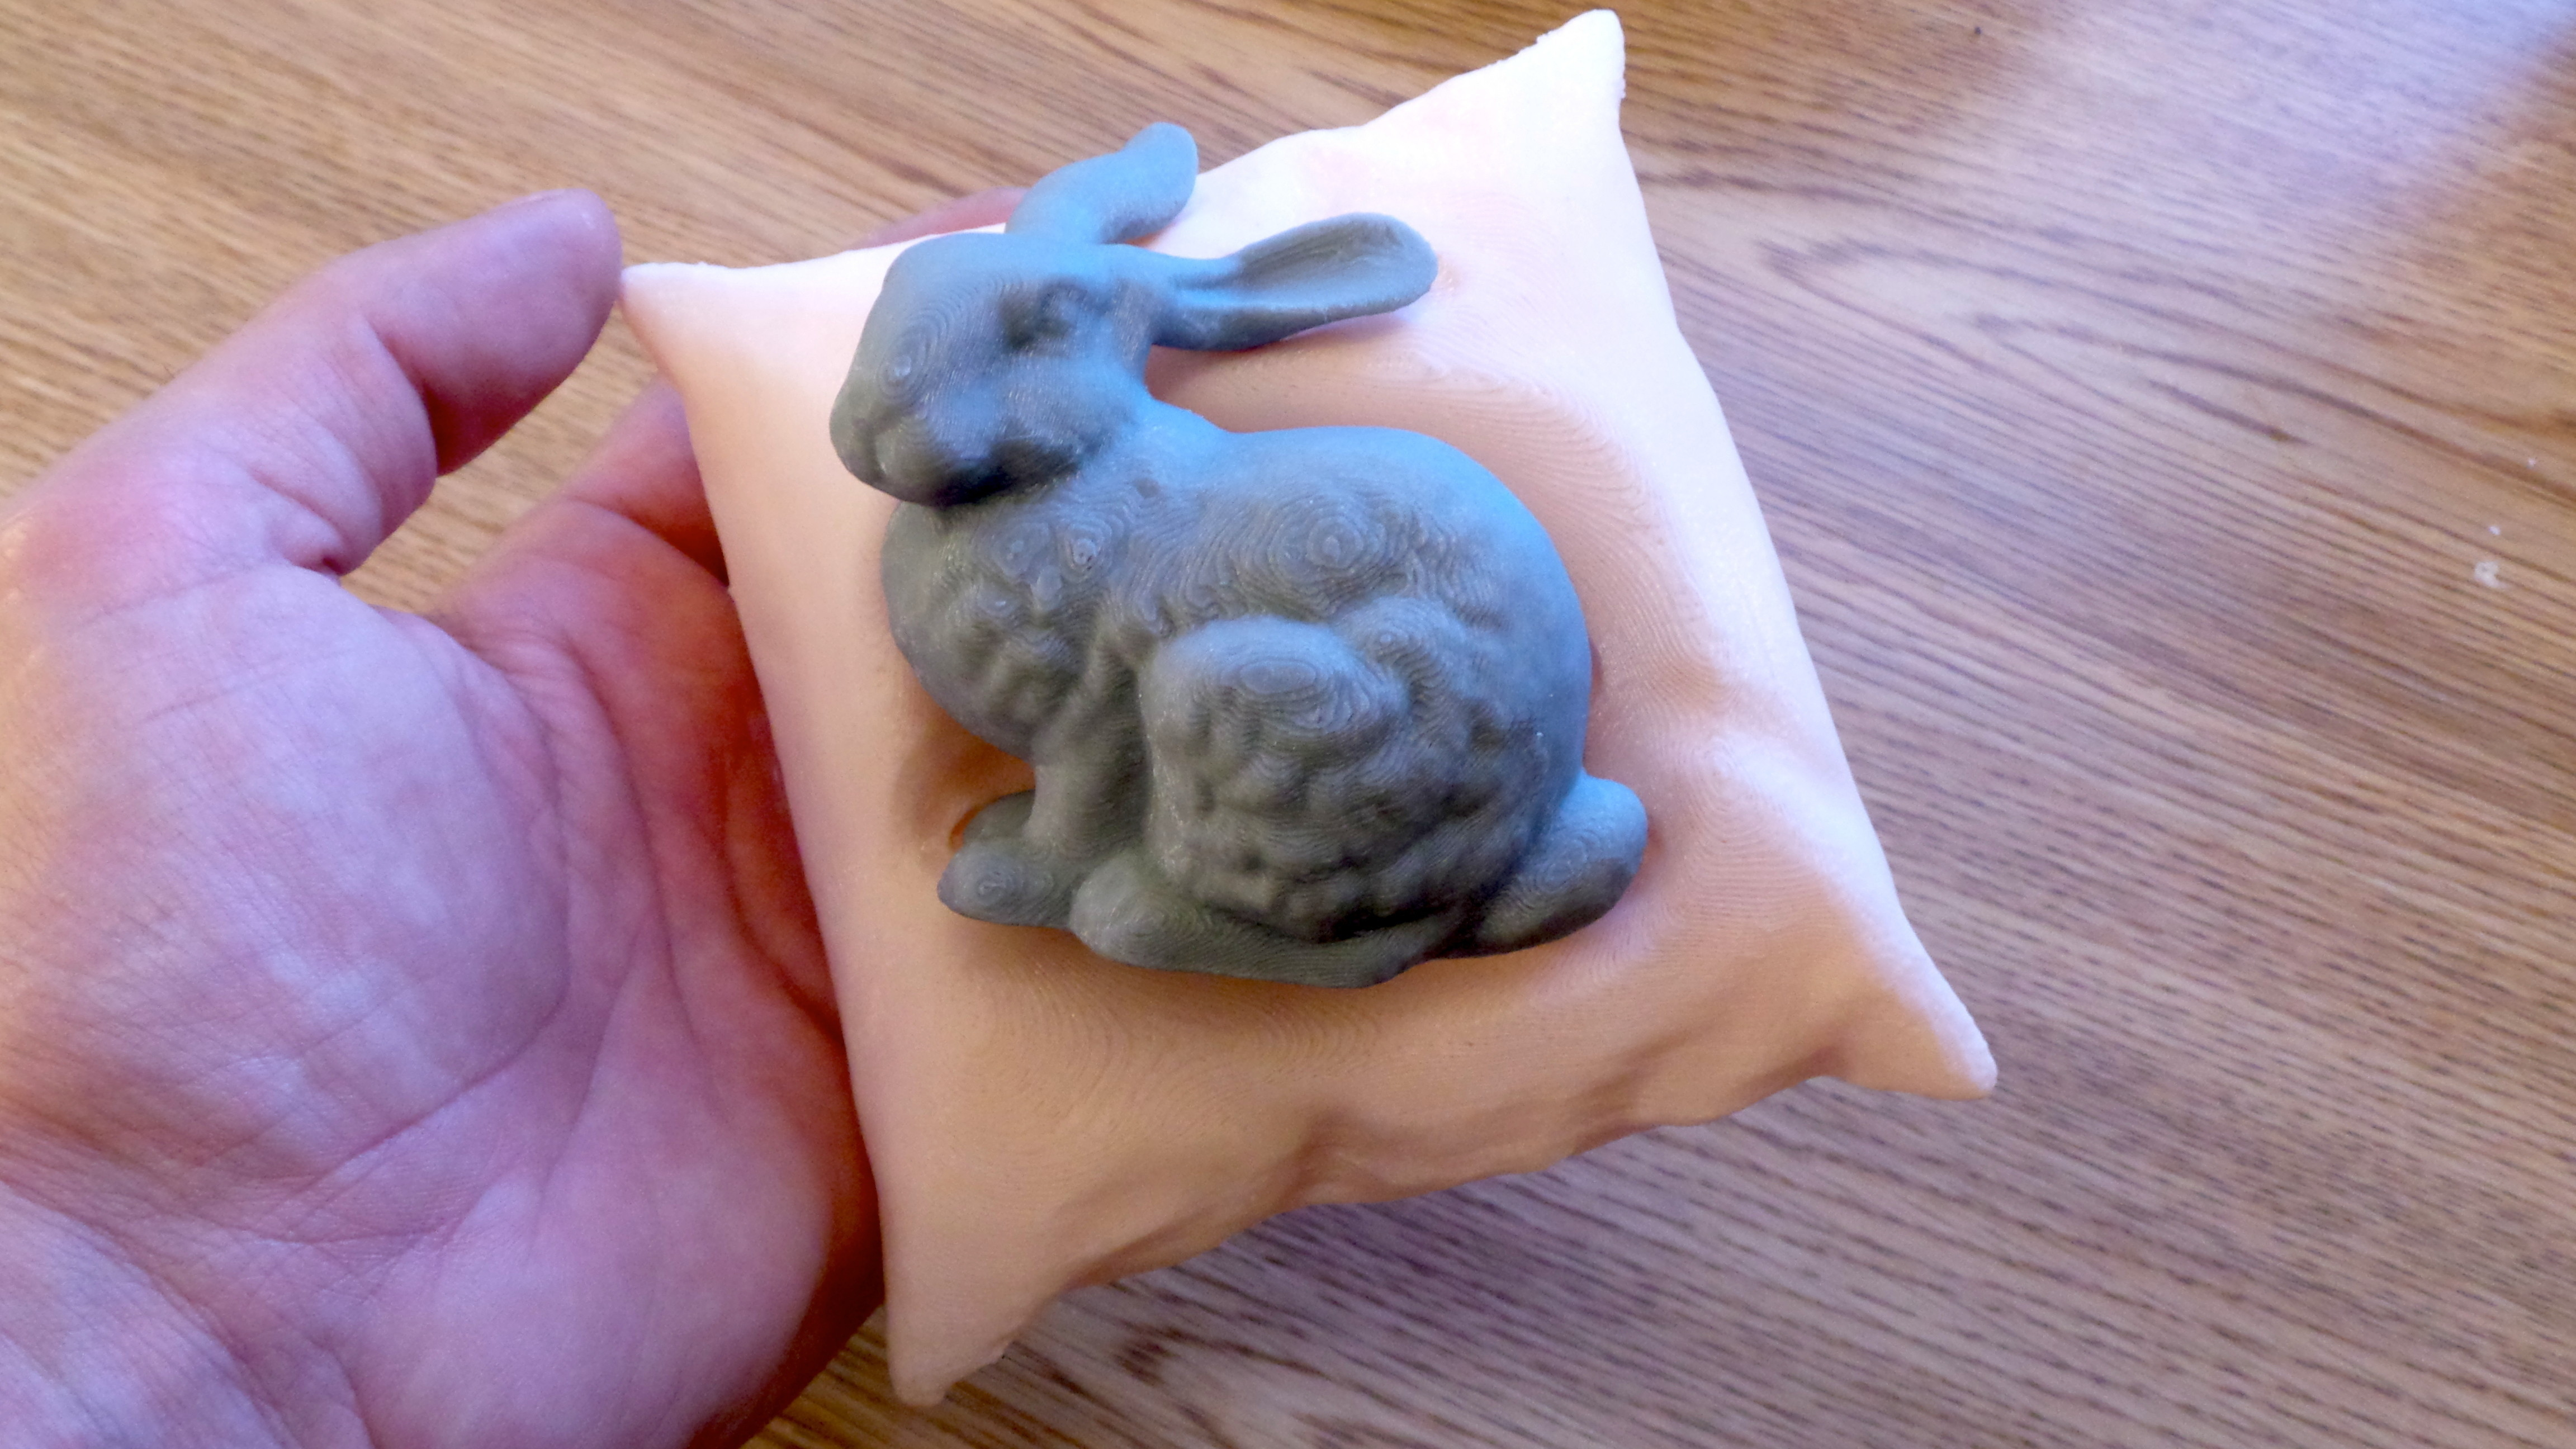 01-Stanford_bunny_resting_on_a_pillow_-_Main_view.jpg Download free STL file Stanford bunny resting on a pillow • Template to 3D print, CreativeTools